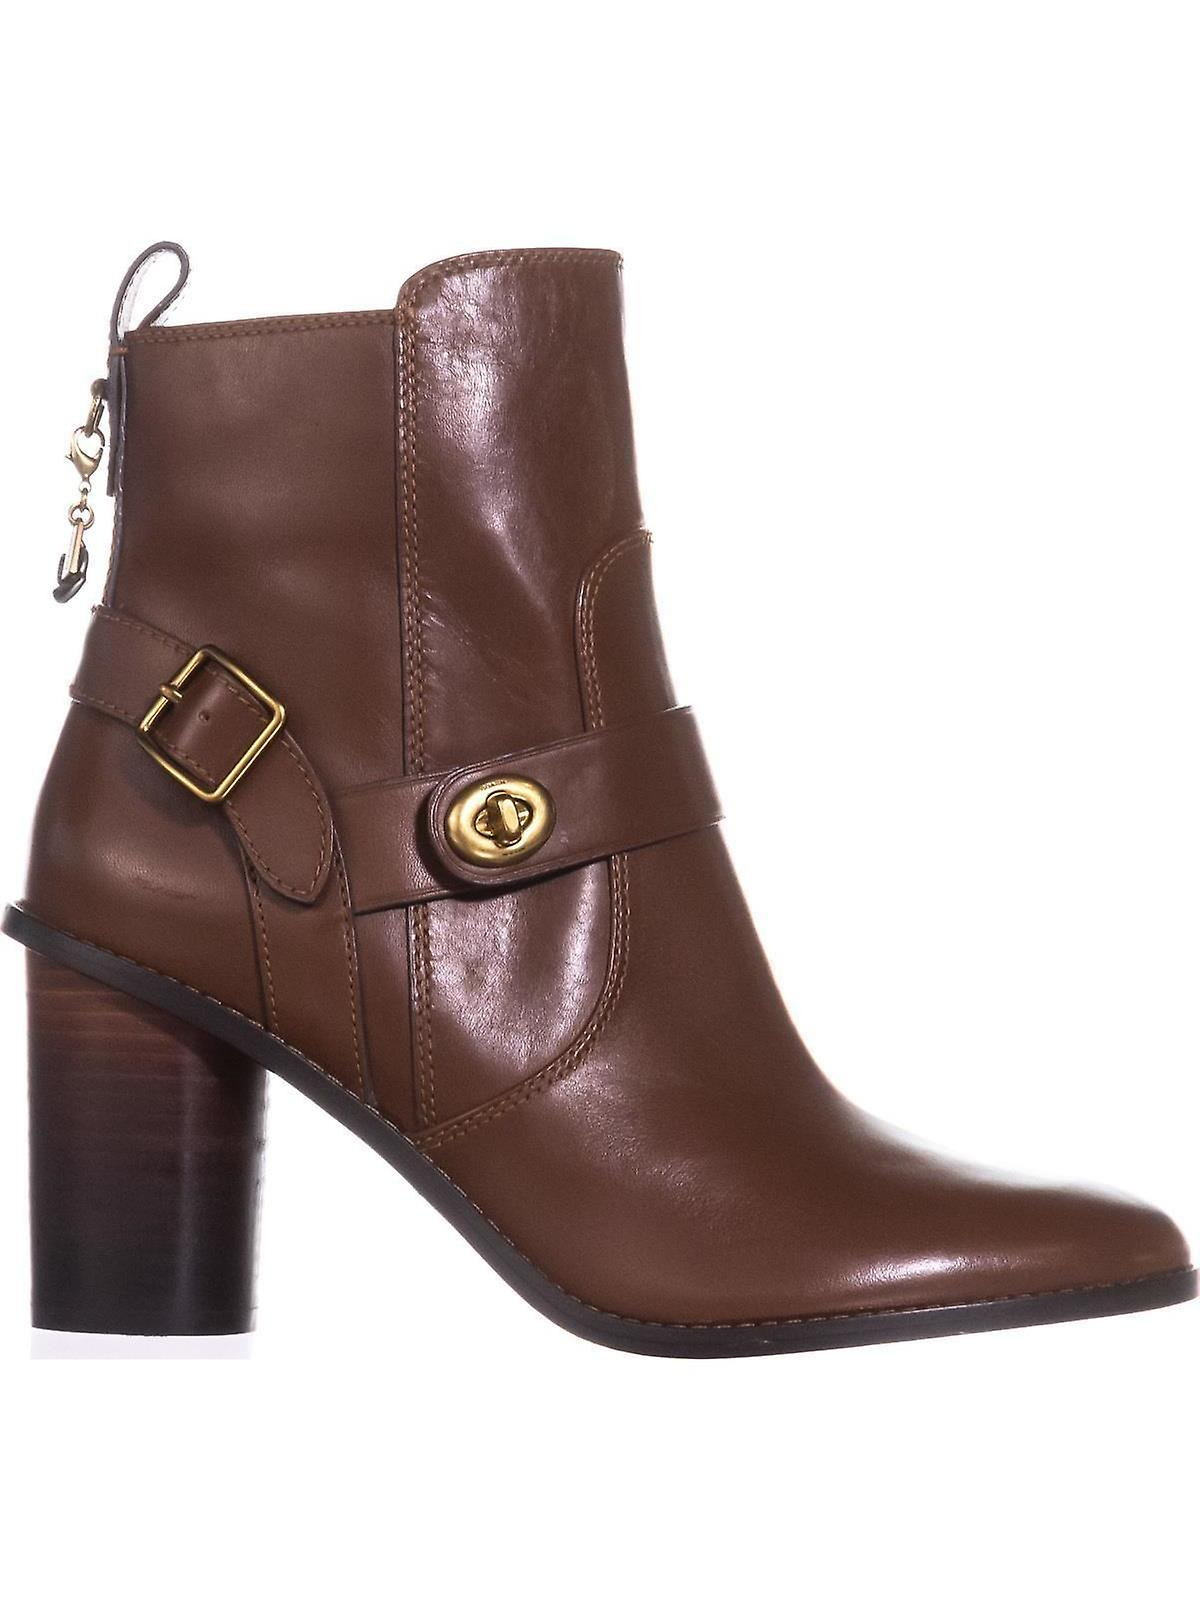 Coach Womens Moto Leather Closed Toe Ankle Clog Boots Nplee